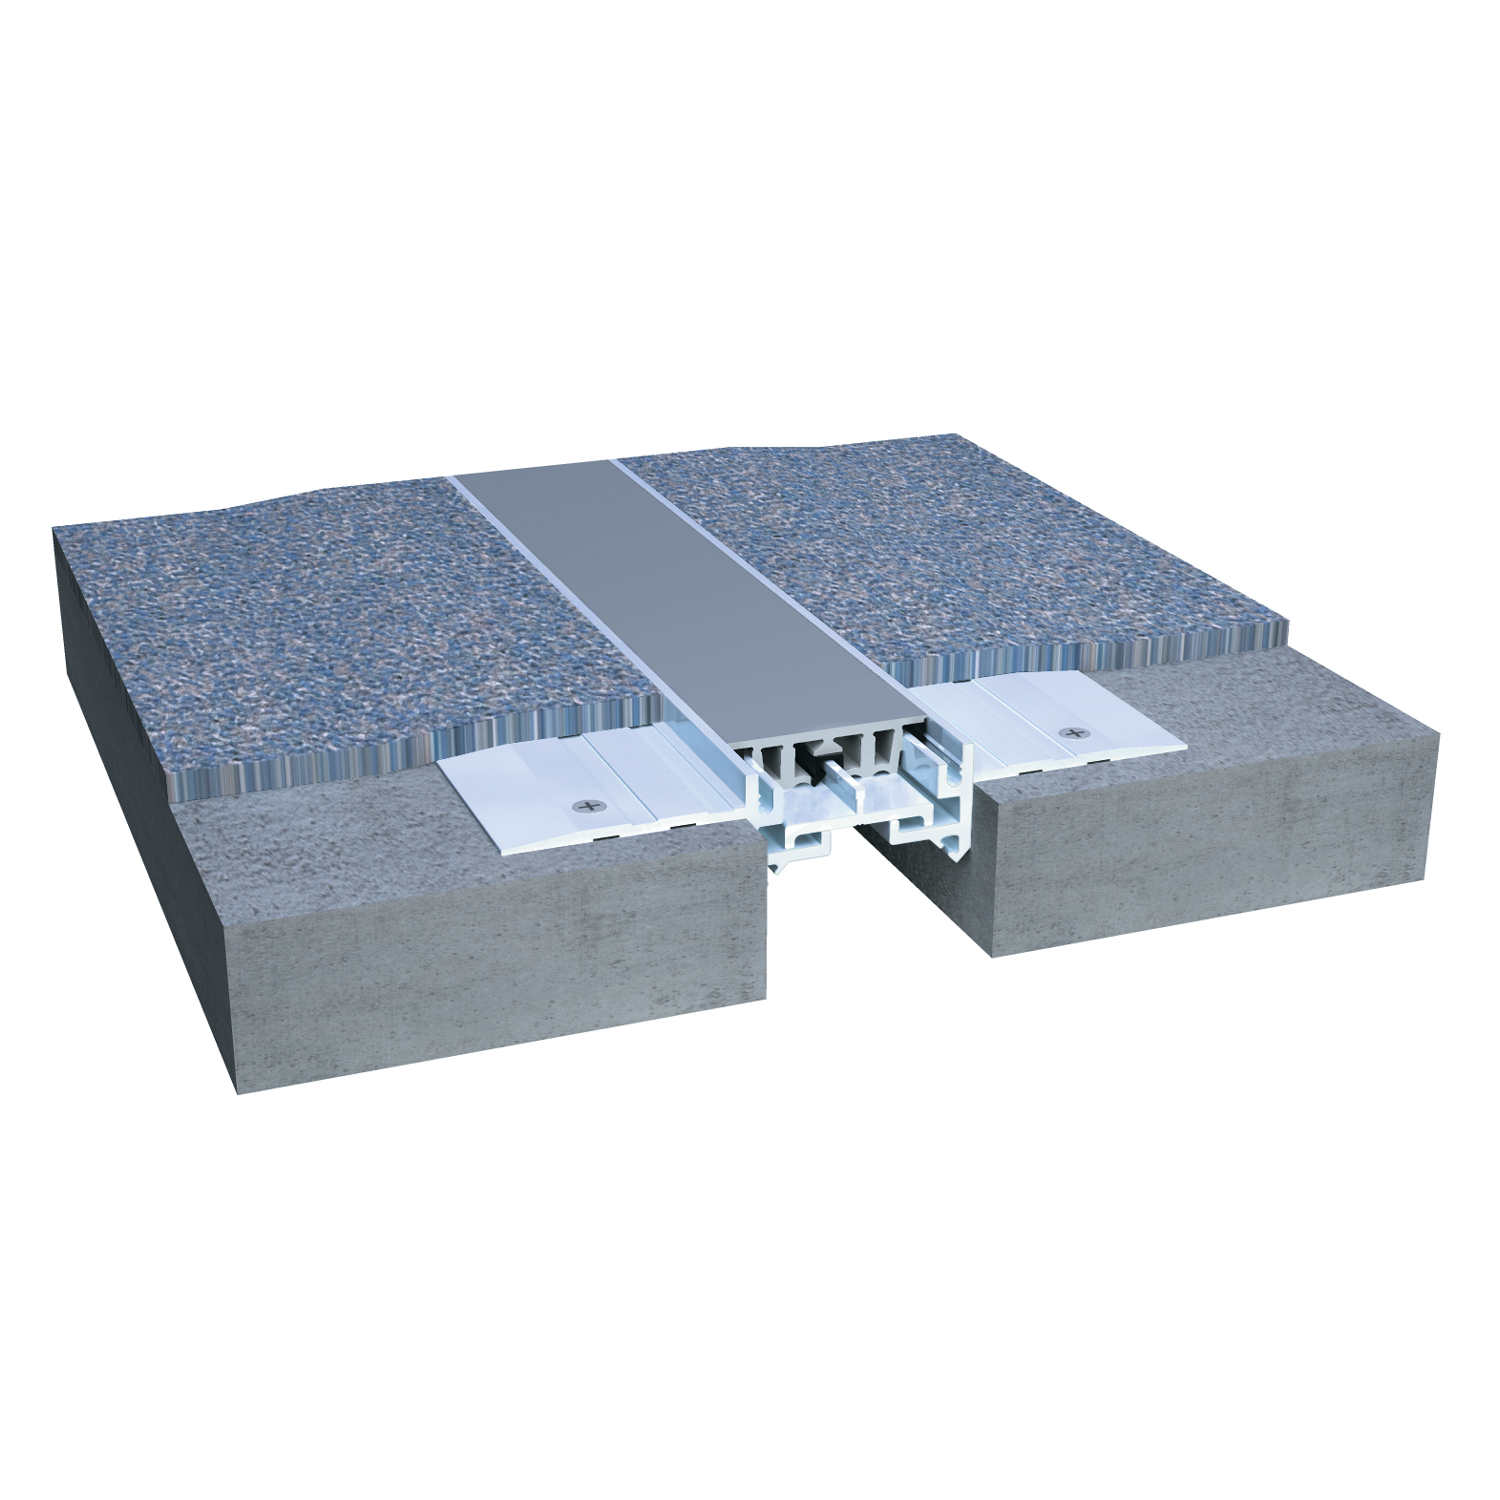 106 Series Floor System Expansion Systems